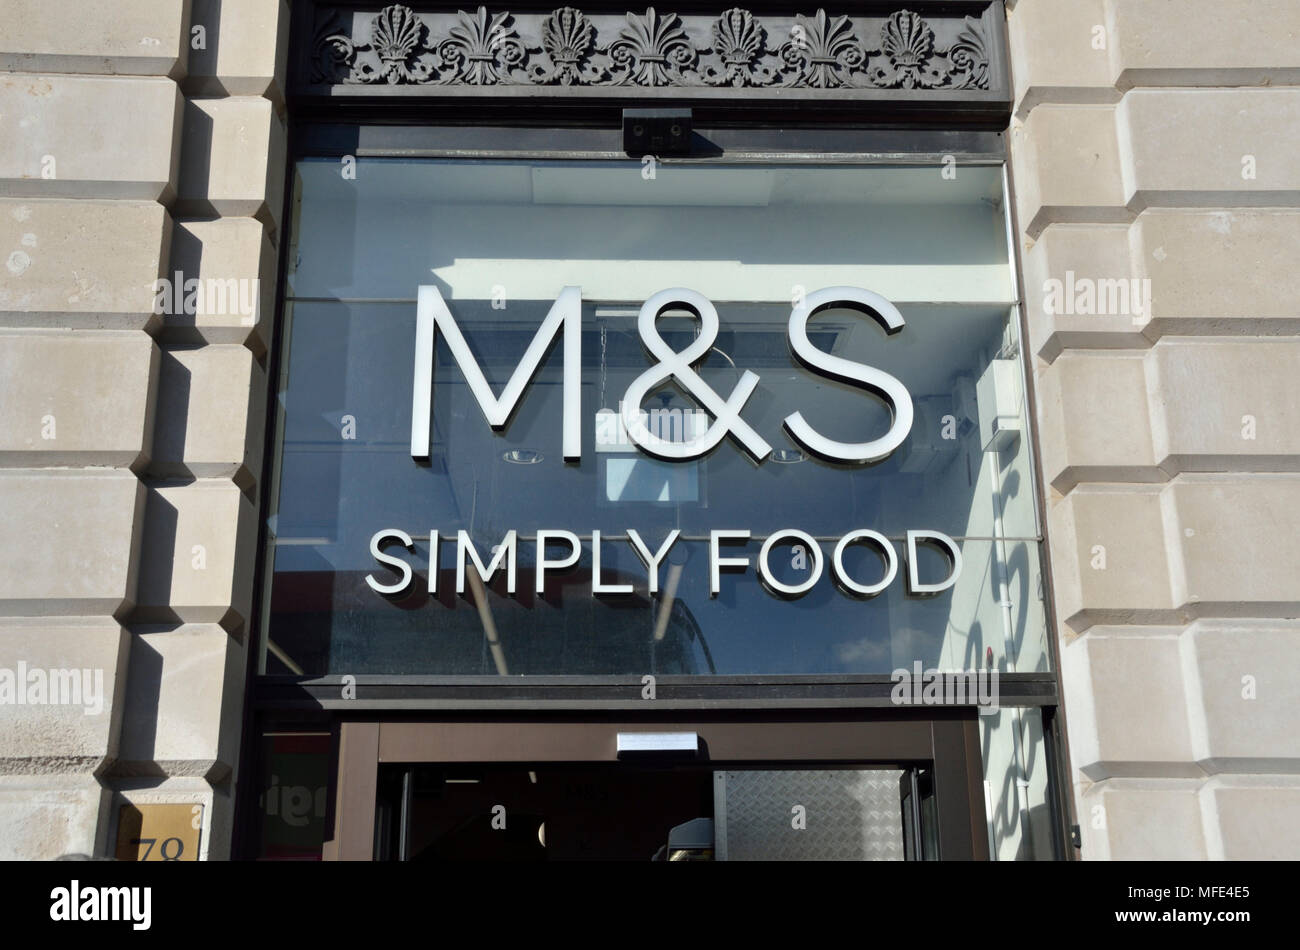 M And S Marks And Spencer Simply Food Supermarket Shop In Piccadilly London Uk Stock Photo Alamy